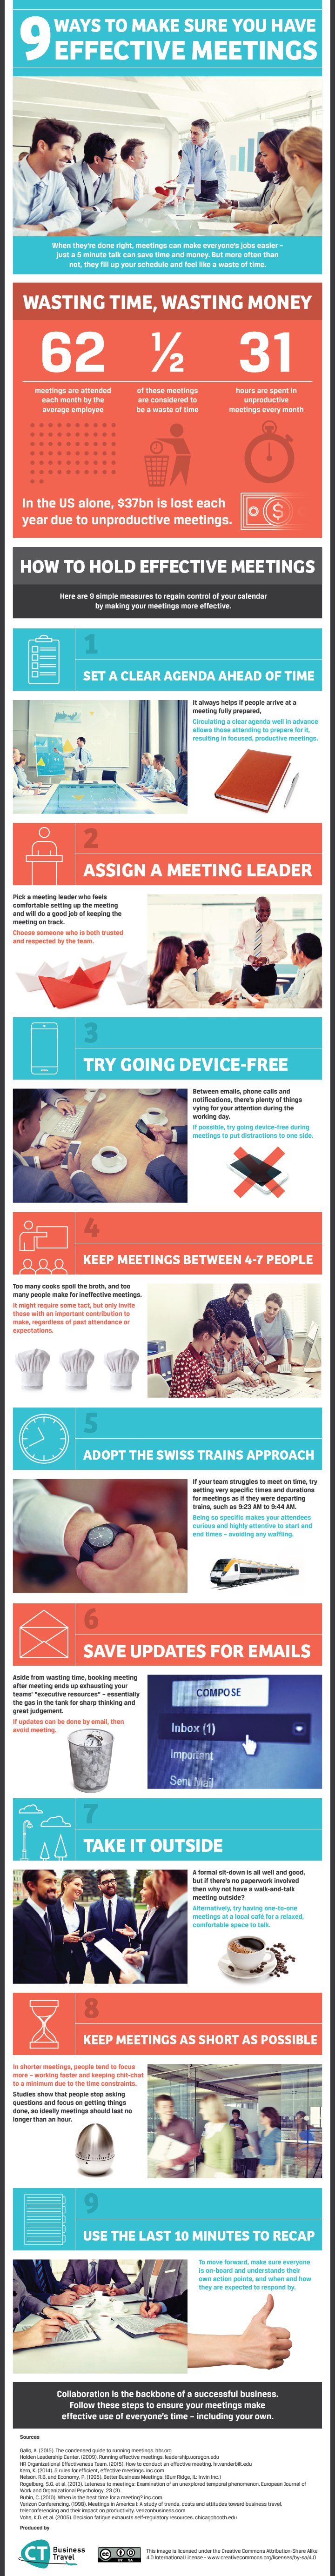 9-ways-to-make-sure-you-have-effective-meetings-v2